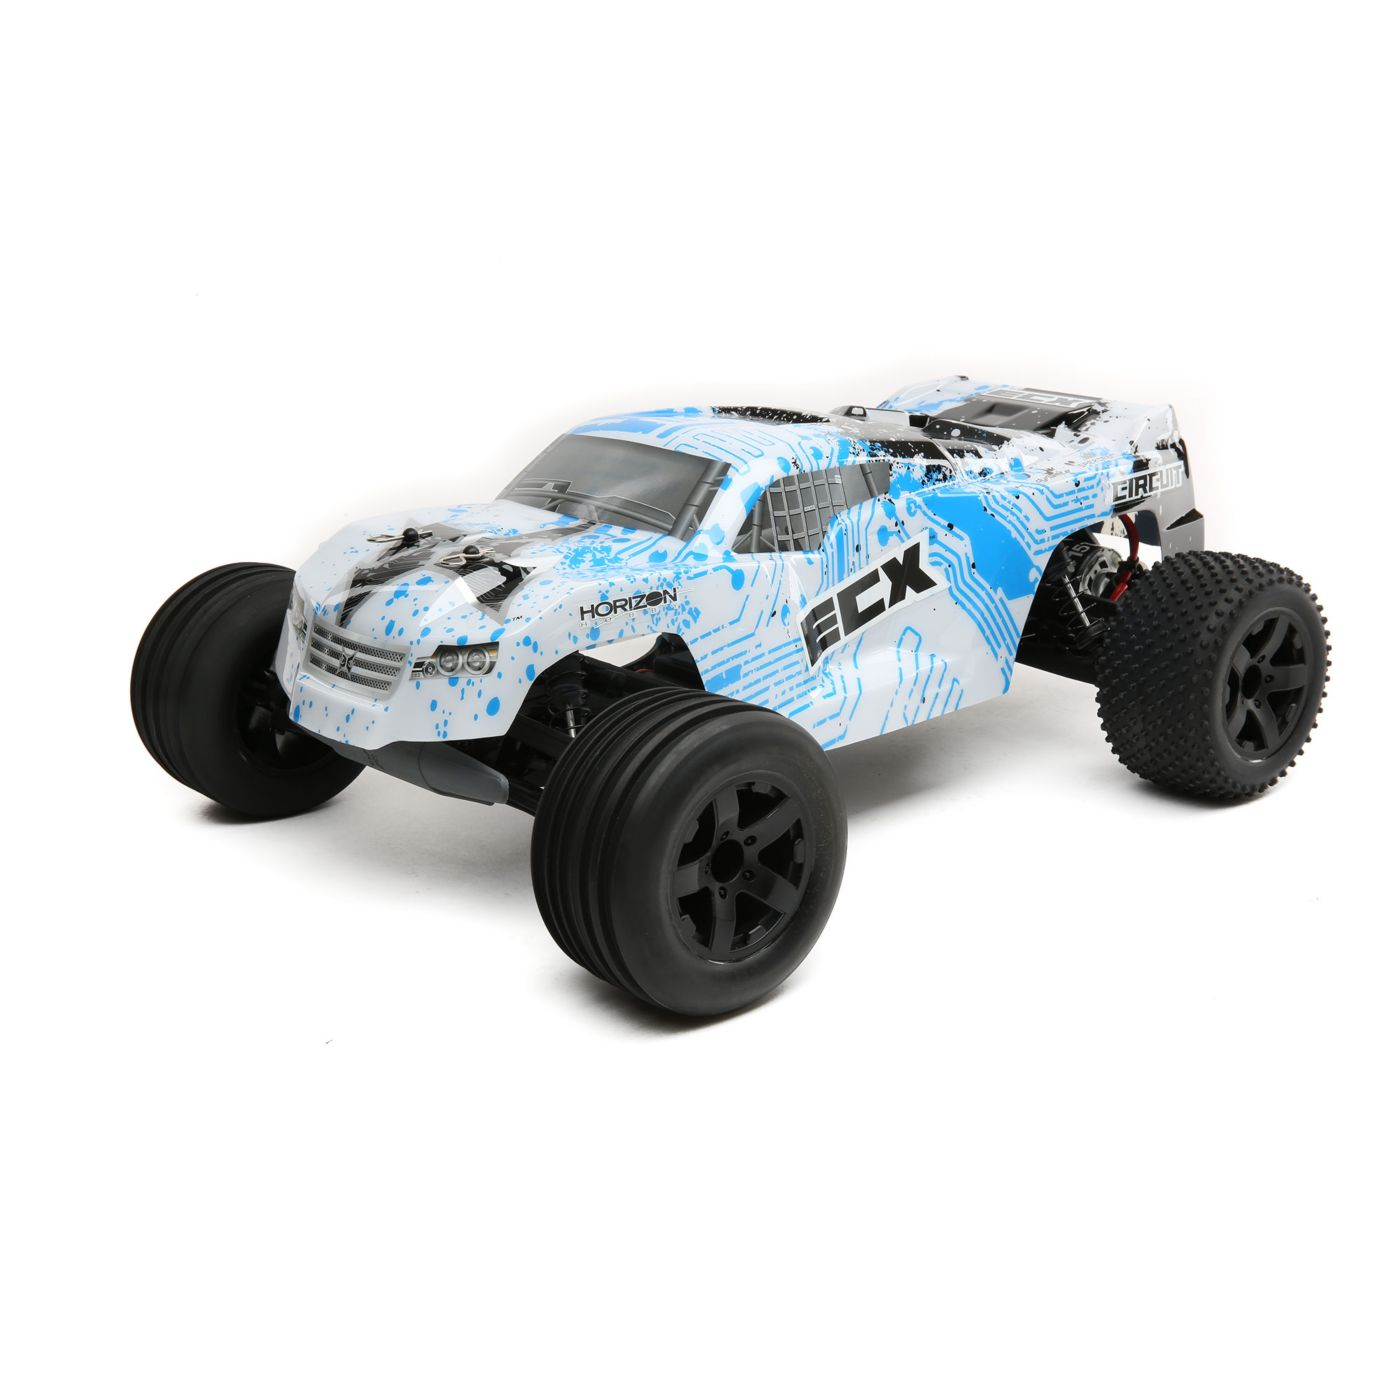 1/10 Circuit 2WD StadiumTruck, Brushed, LiPo, RTR: White/Blue